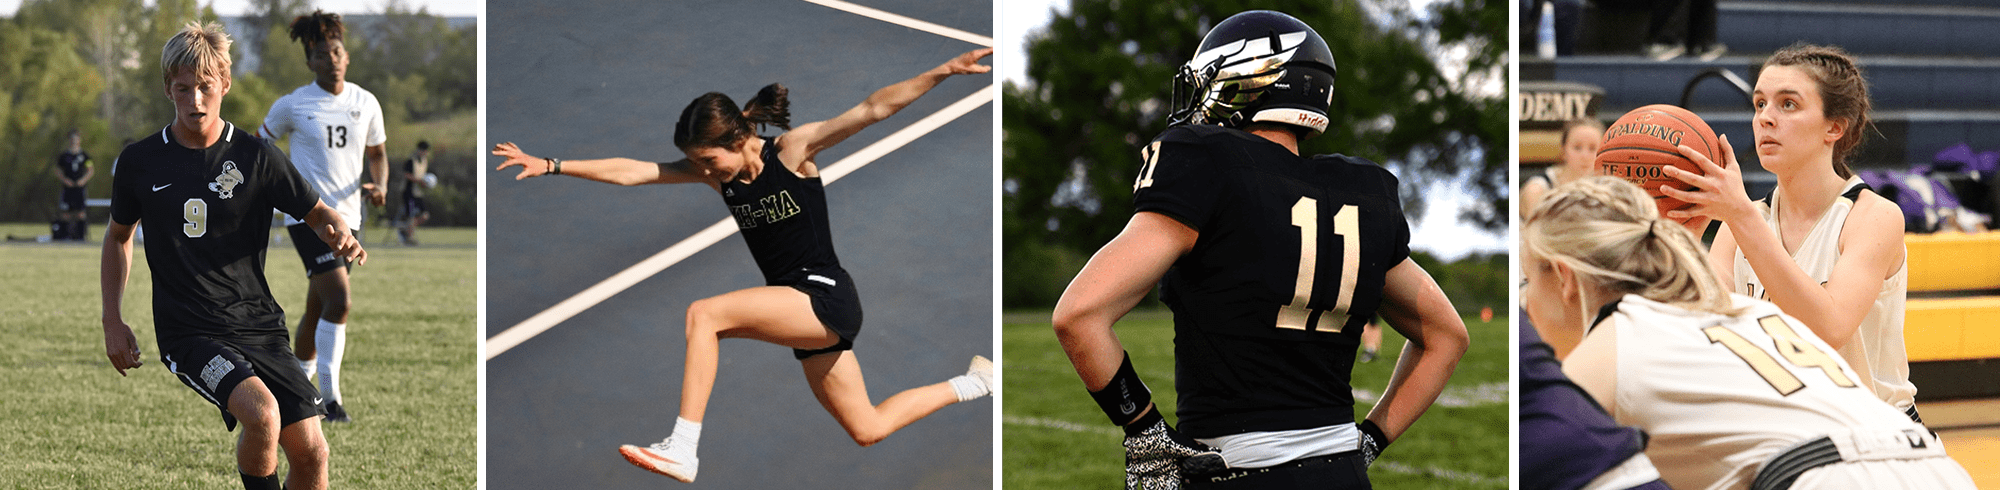 a student shooting a basket, a student swimming, a football player, a track student